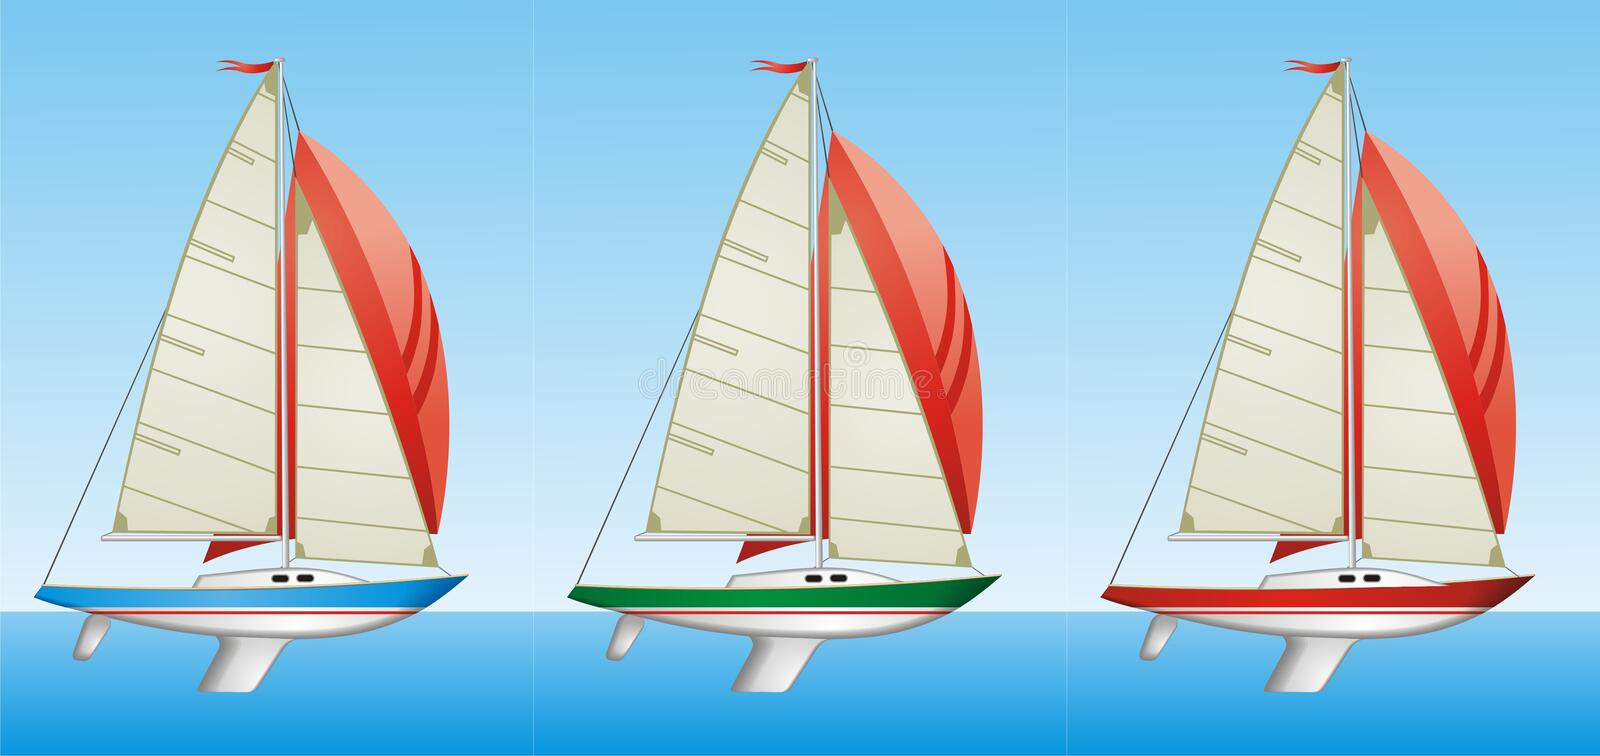 Yachts Stock Photos